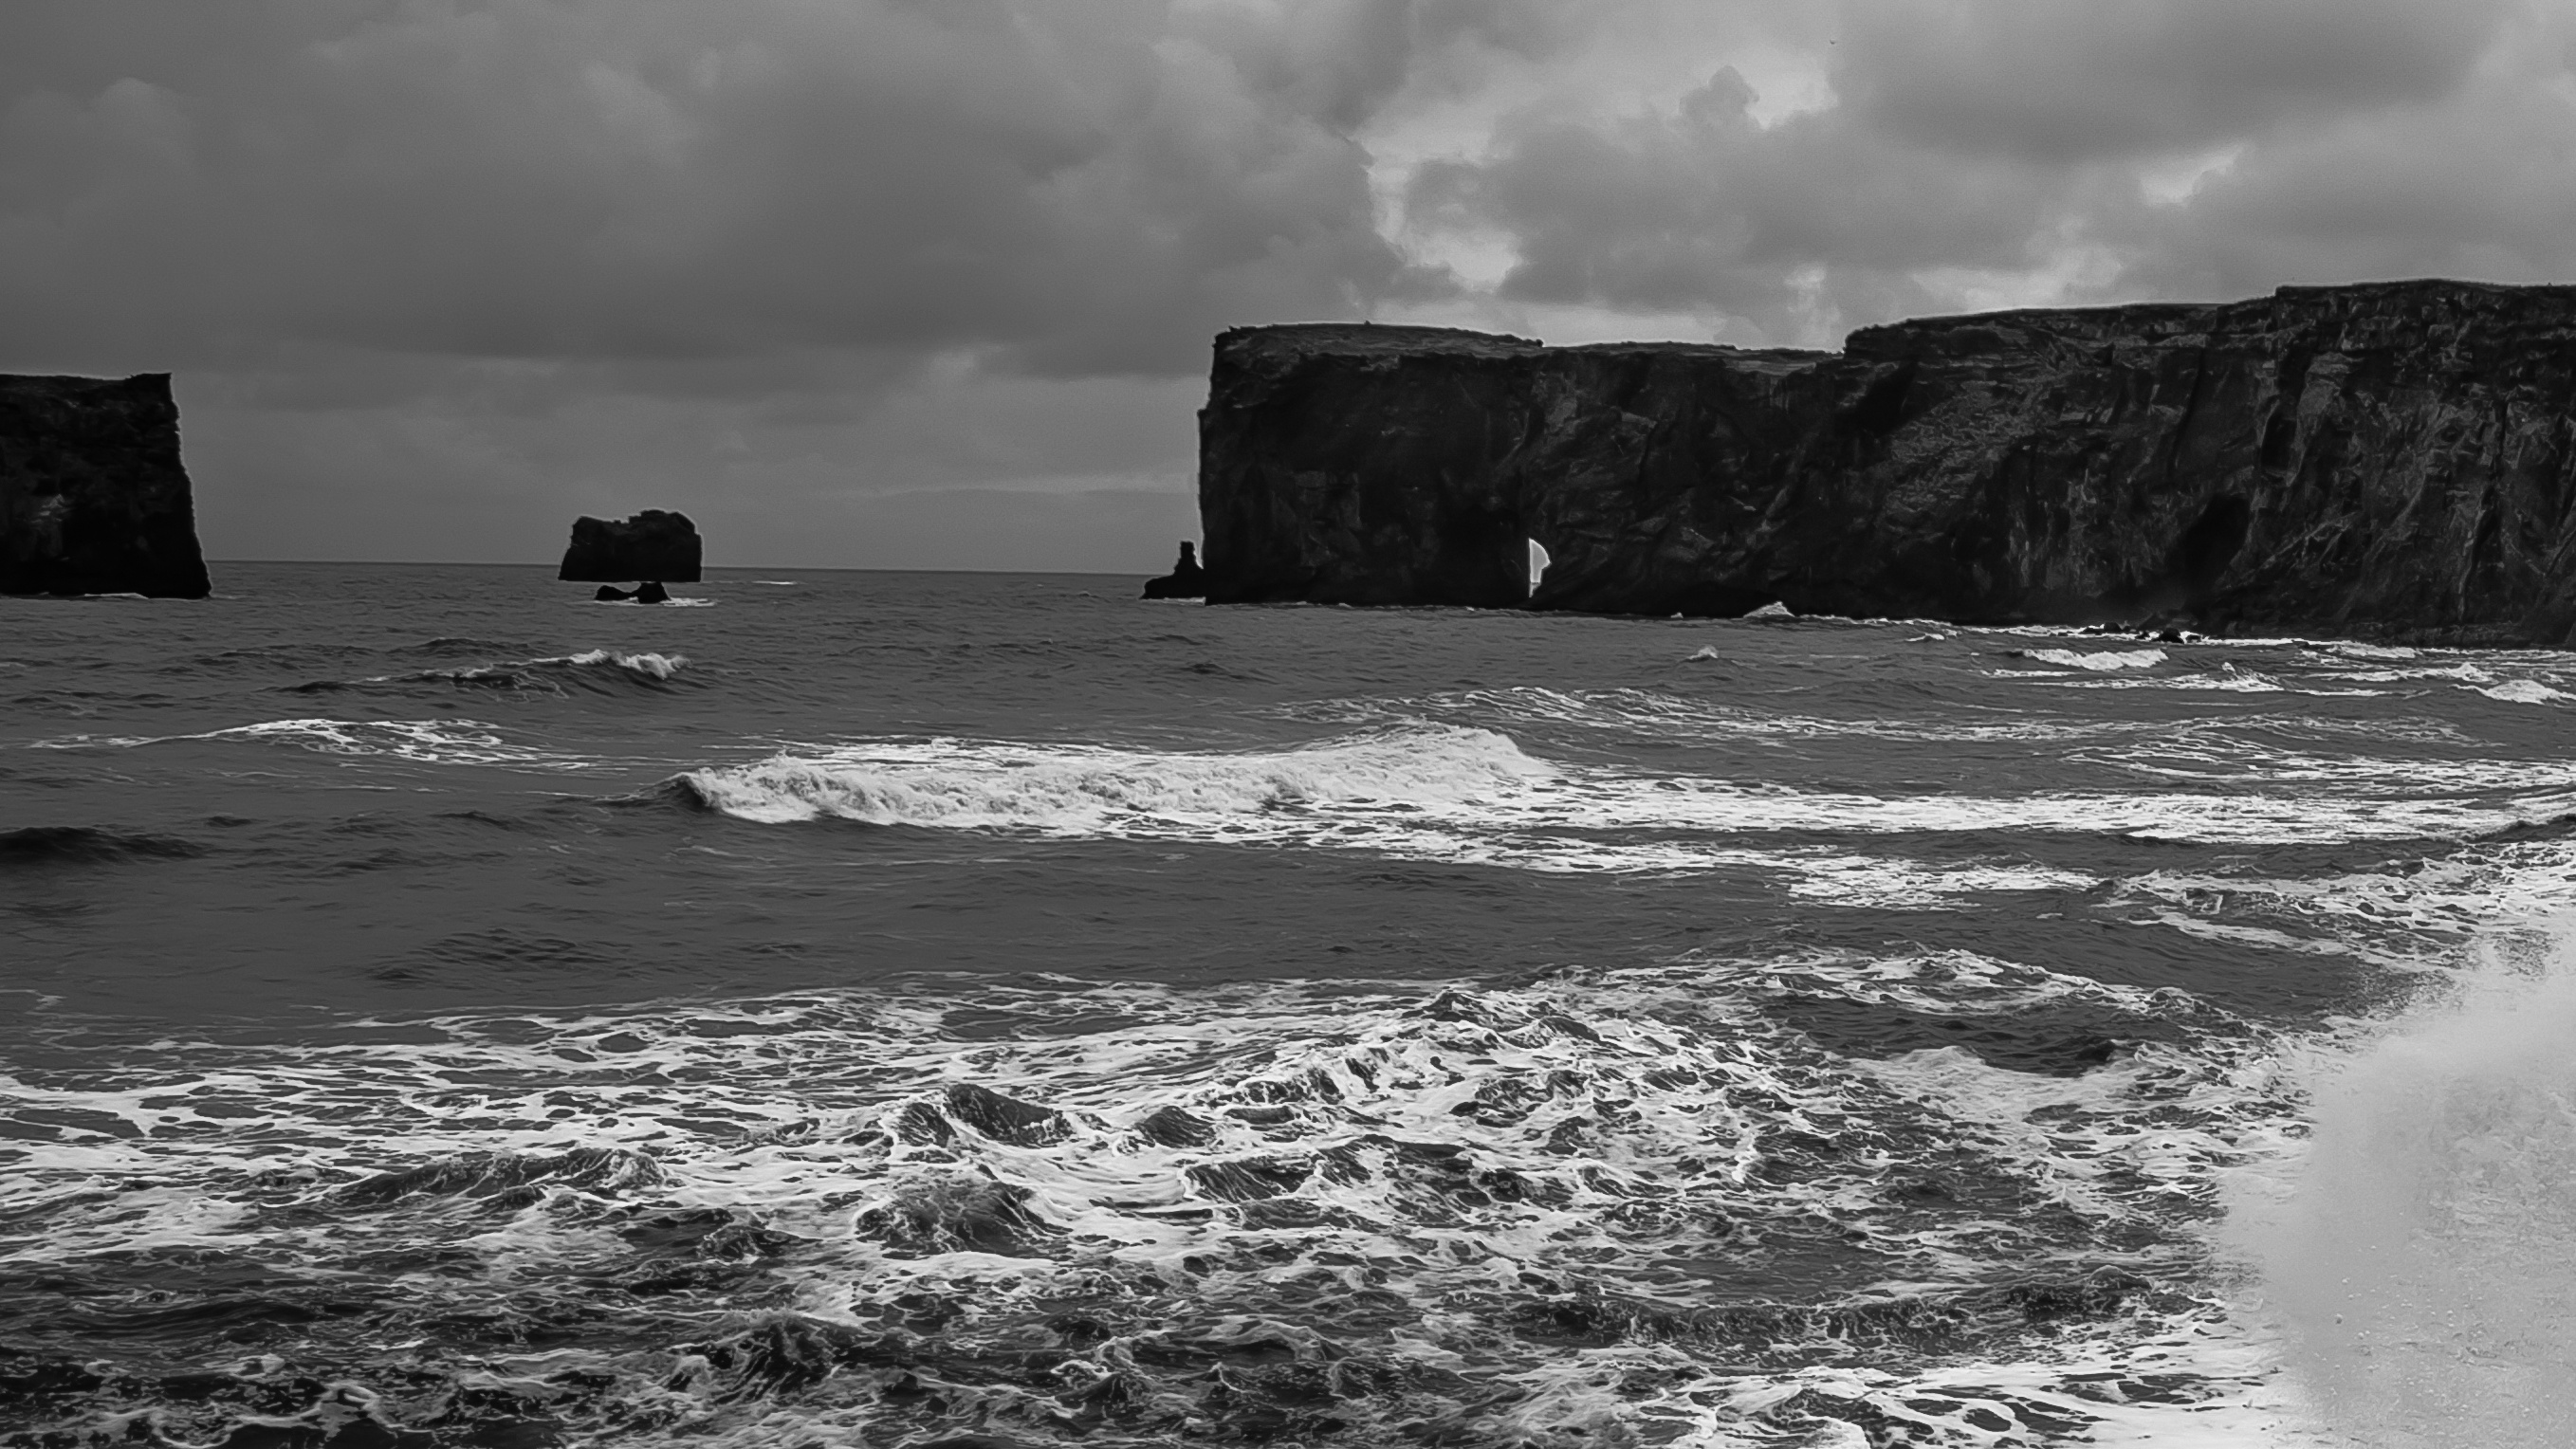 Cliffs surrounding a stormy sea cove